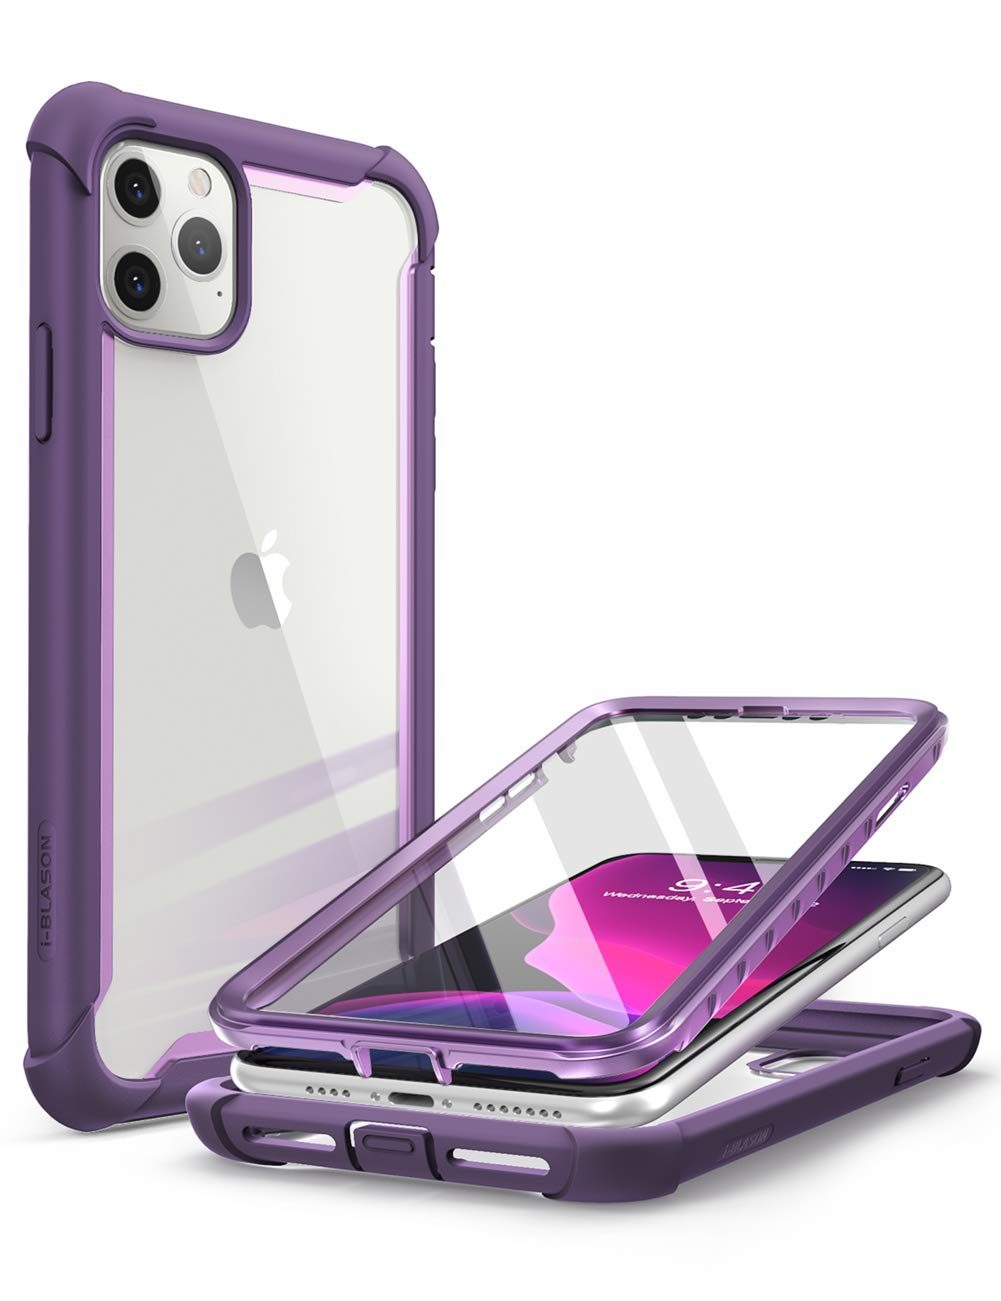 i-Blason Ares Case for iPhone 11 Pro Max 2019 Release, Dual Layer Rugged Clear Bumper Case with Built-in Screen Protector (Purple)